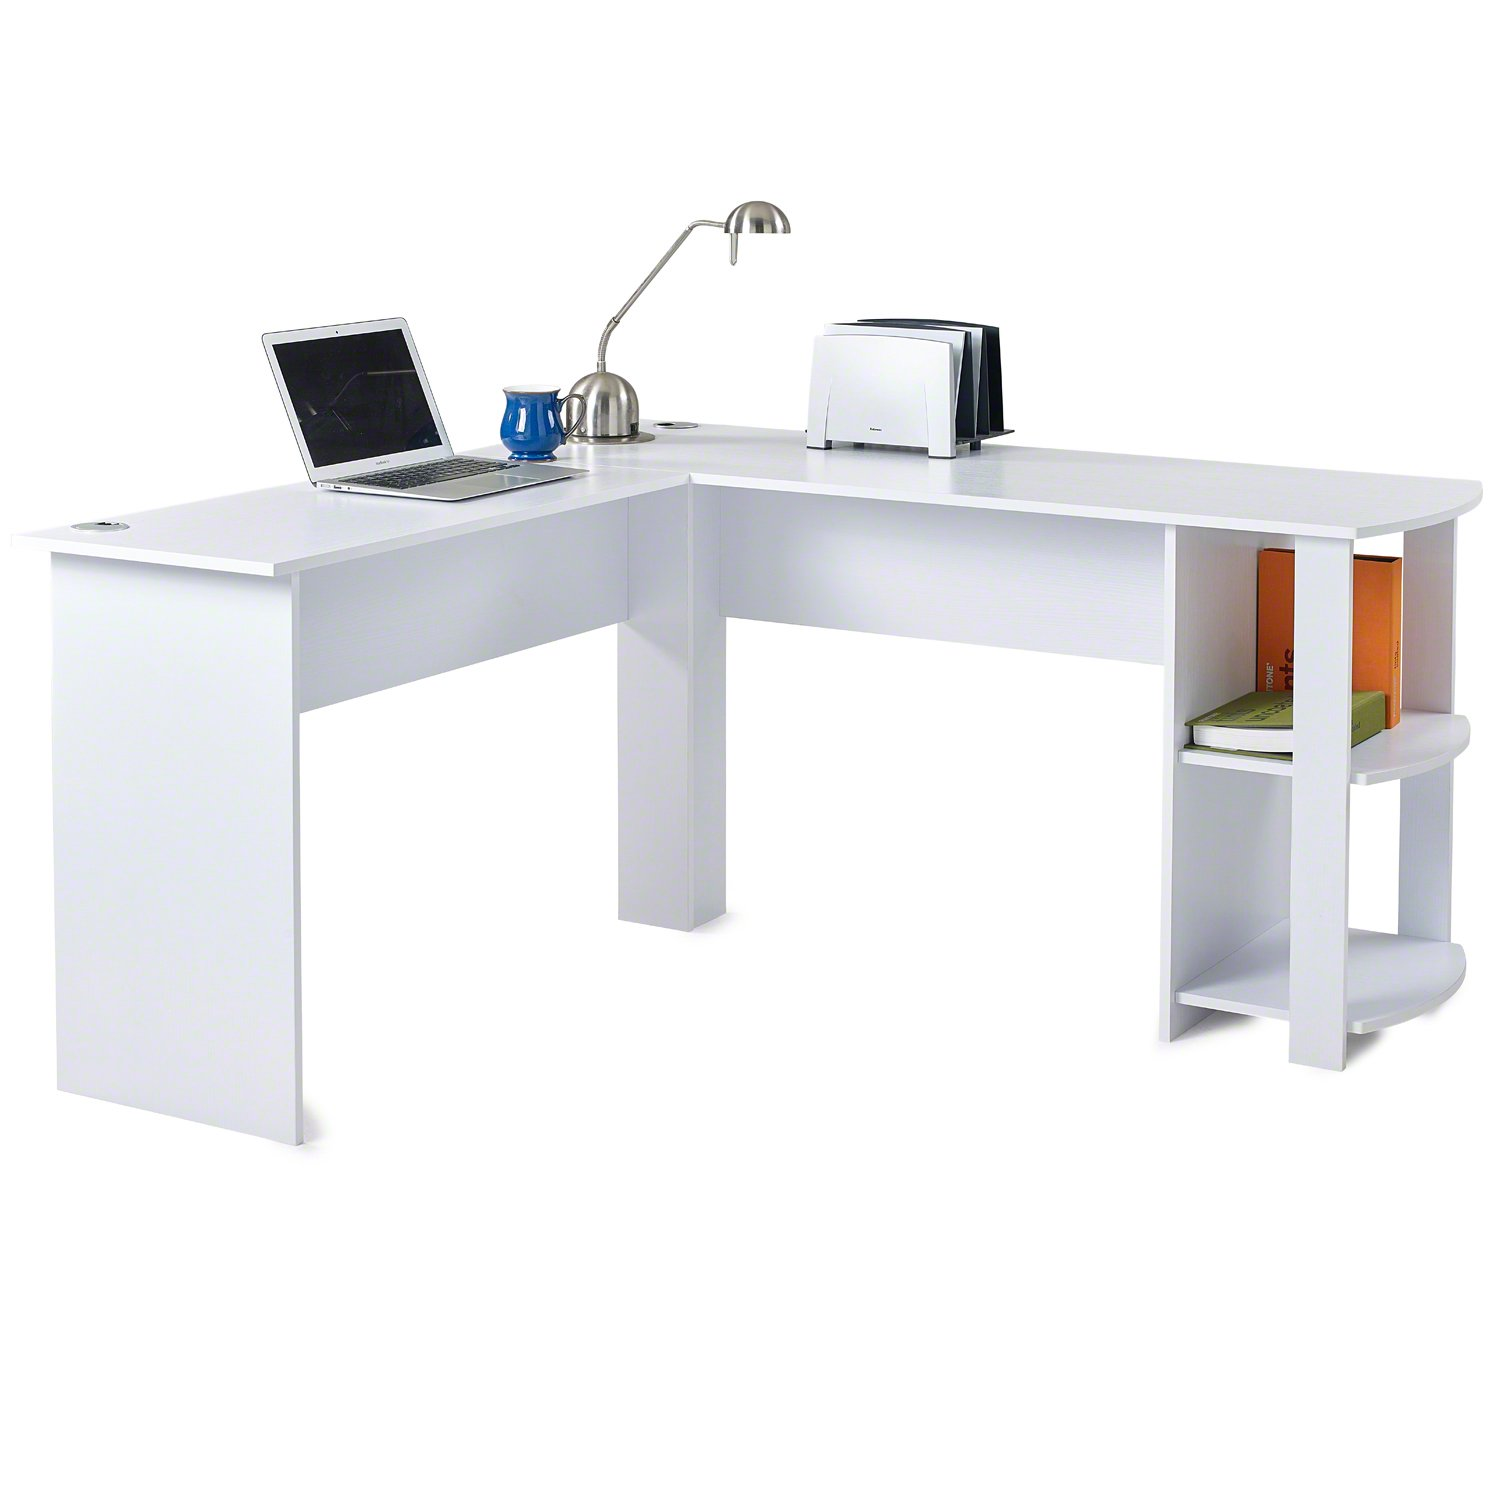 L Shaped Office Computer Desk, Large Corner PC Table With 2 Shelves For Home